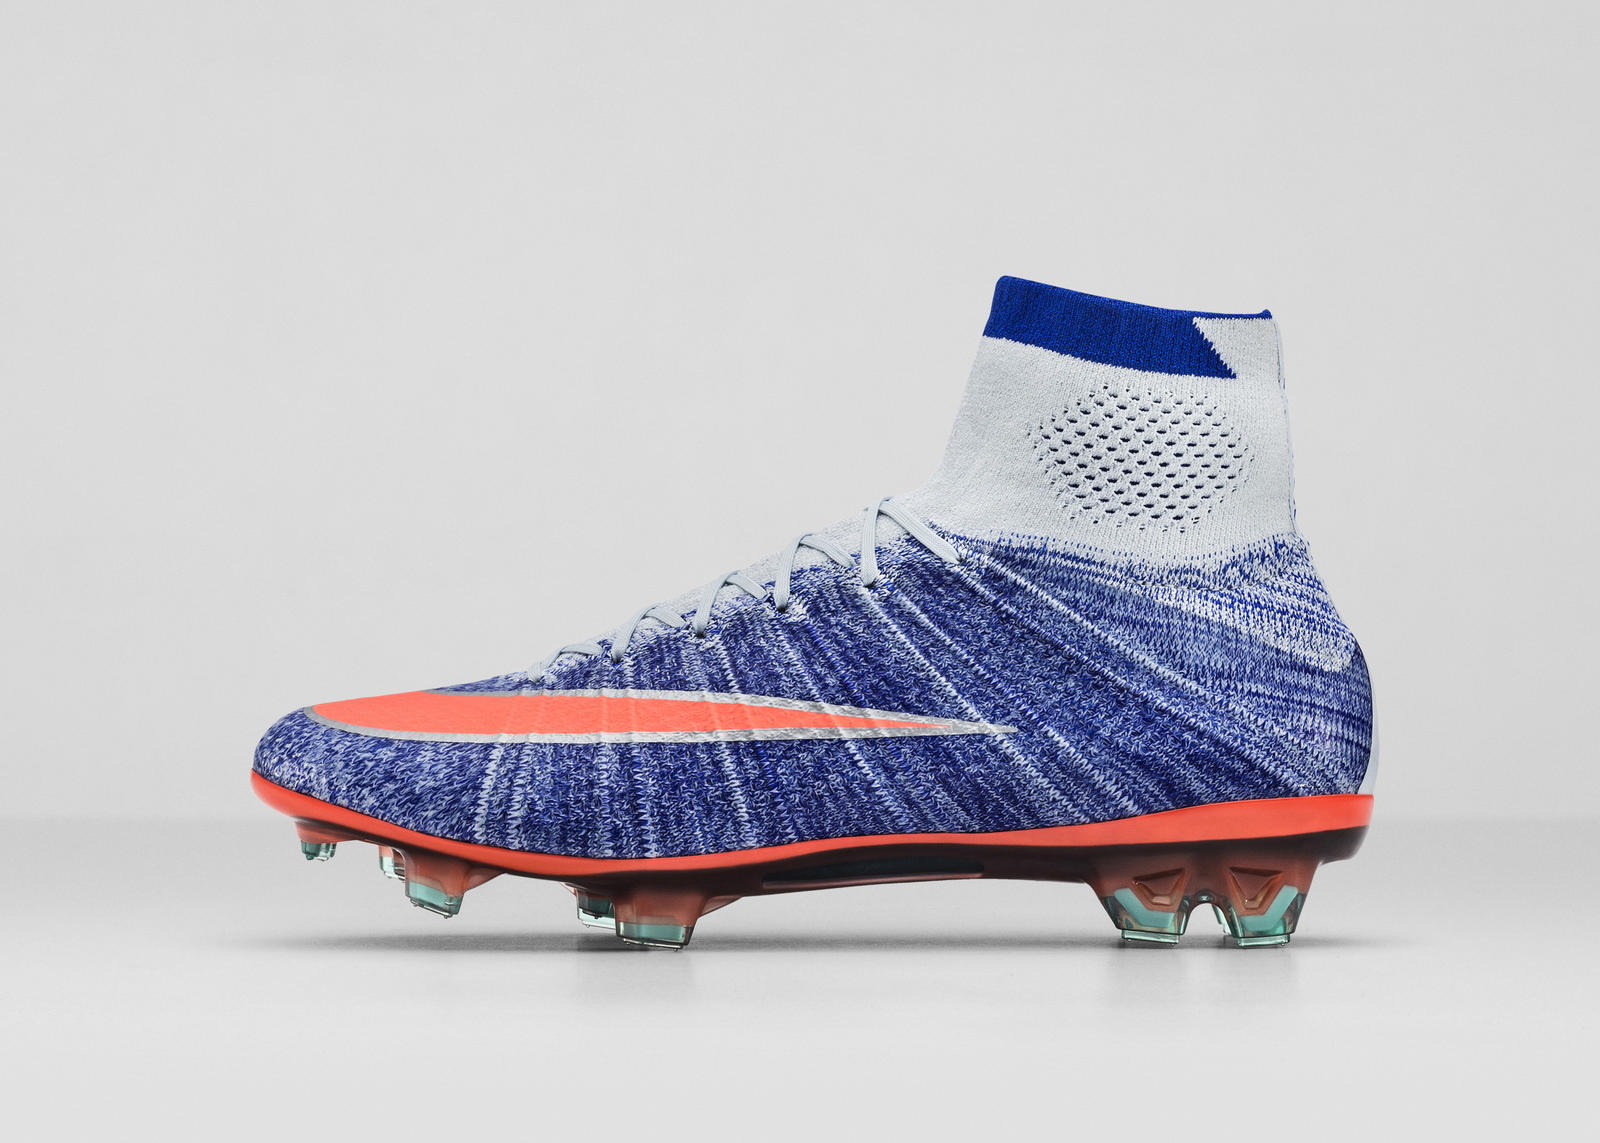 Nike soccer cleats share image LZYHTLR